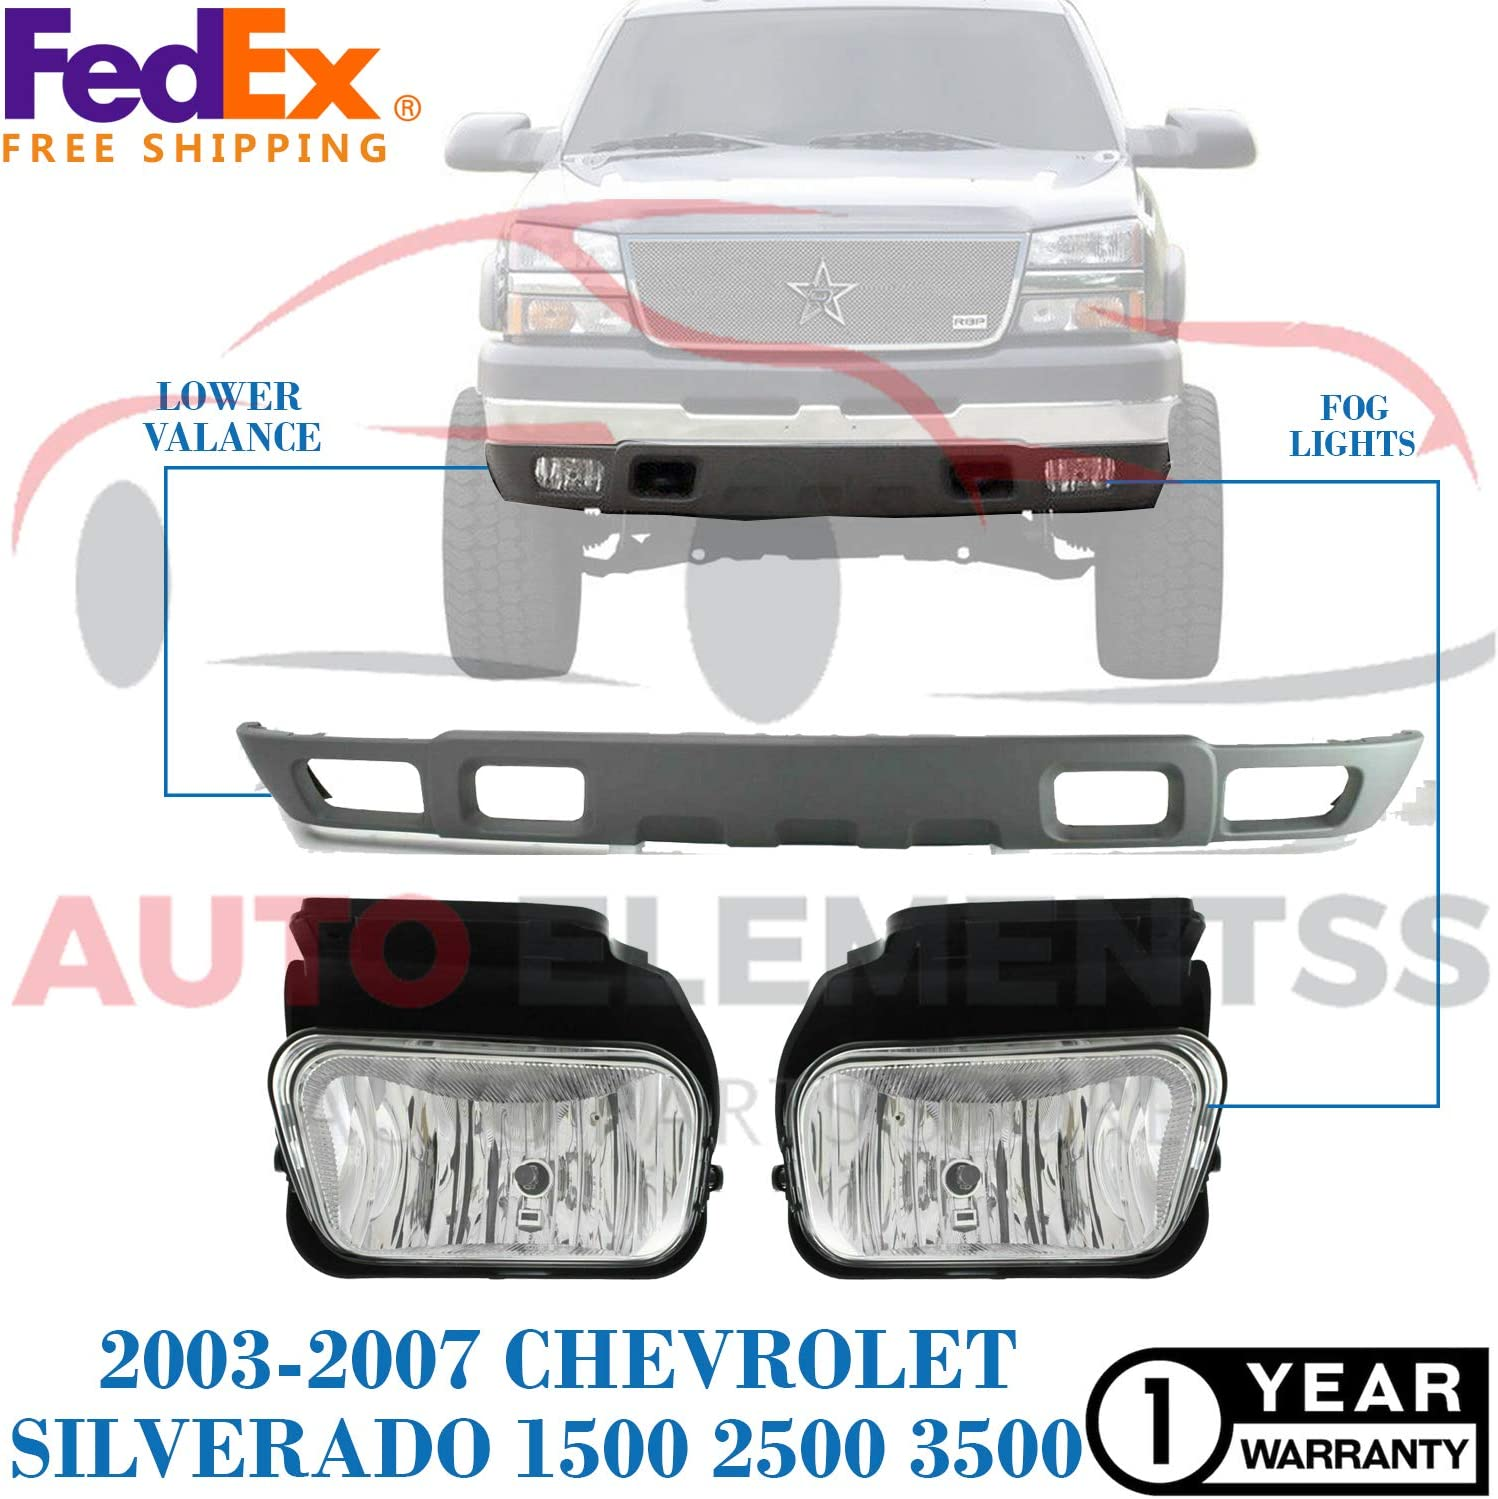 GM2592150 New Front Lower Valance for 2003-2007 Chevrolet Silverado 1500 2500 3500 Hybrid Extended//LS//LT Crew Cab Pickup Direct Replacement with Fog Lights GM1092204 GM2593150.